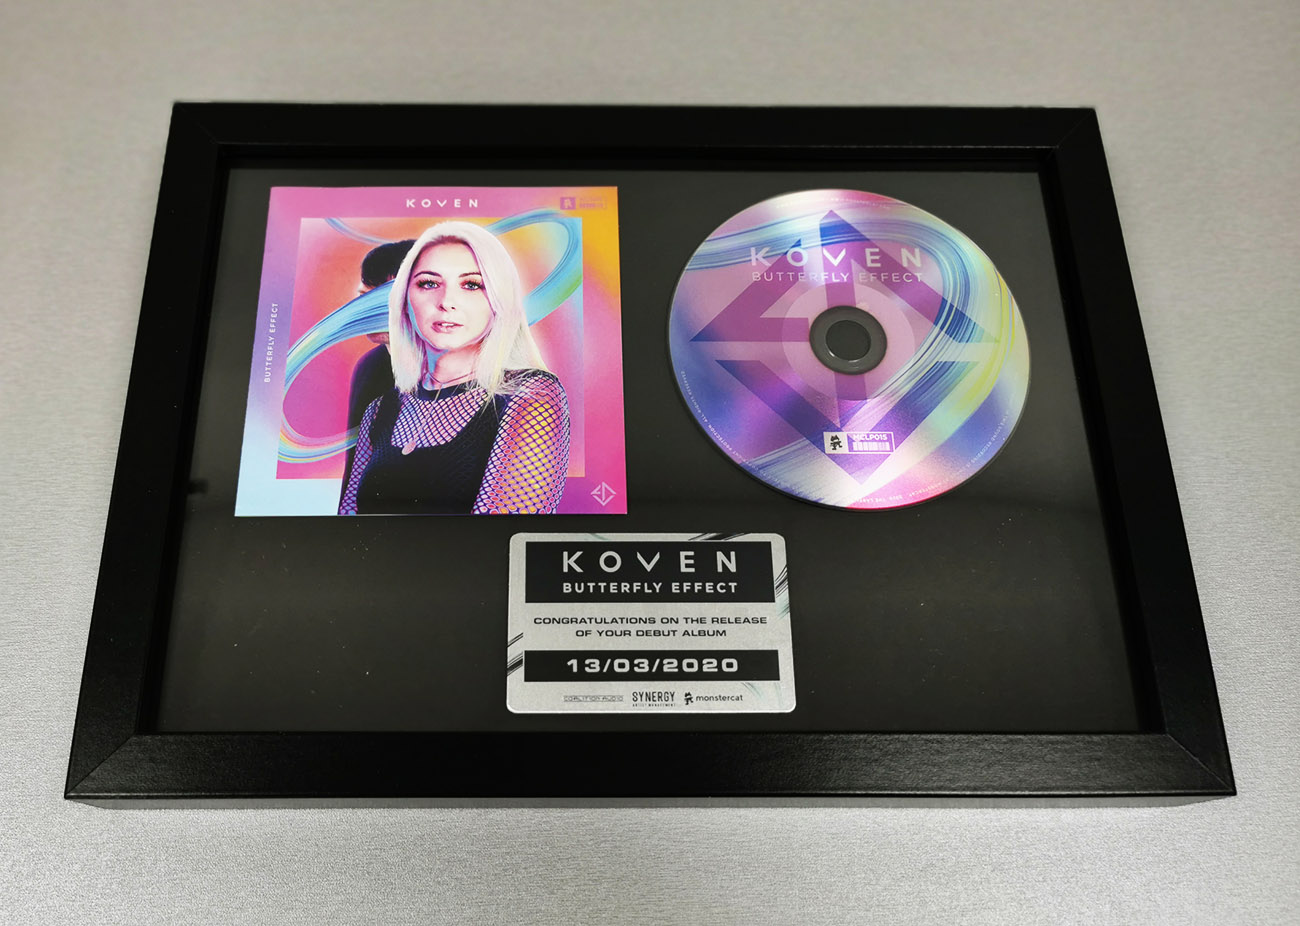 Black A4 frame with printed metal plaque, CD and booklet